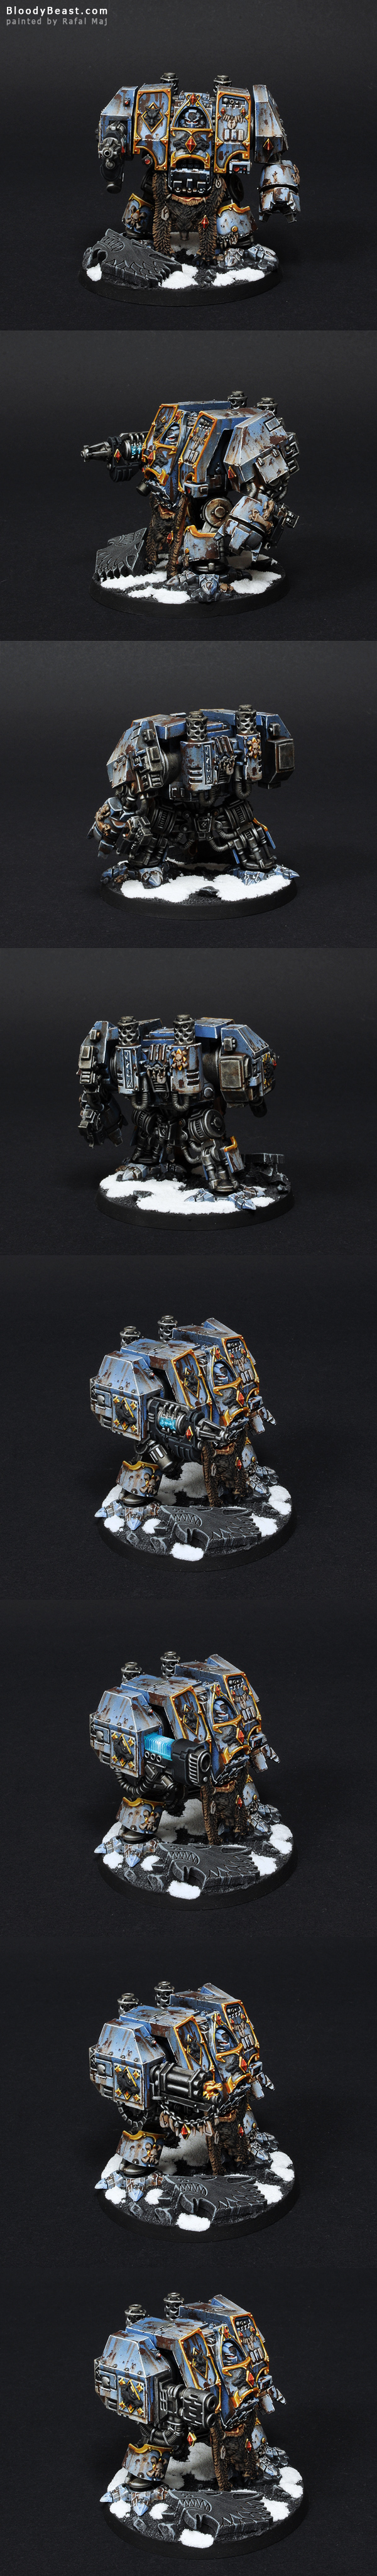 Space Wolves Dreadnought painted by Rafal Maj (BloodyBeast.com)